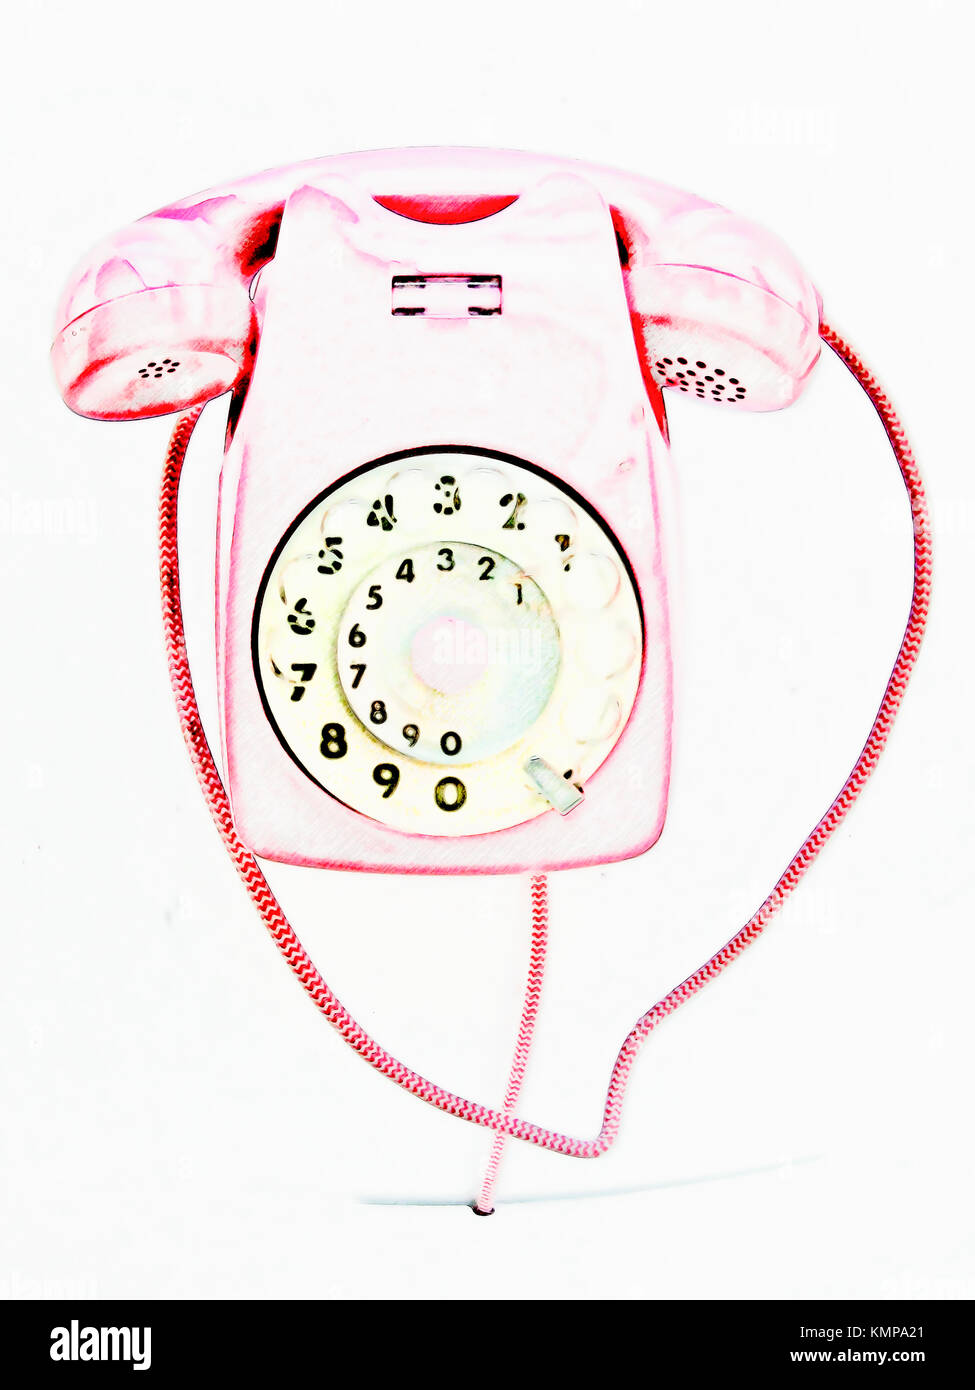 Drawing of a pink vintage telephone. - Stock Image